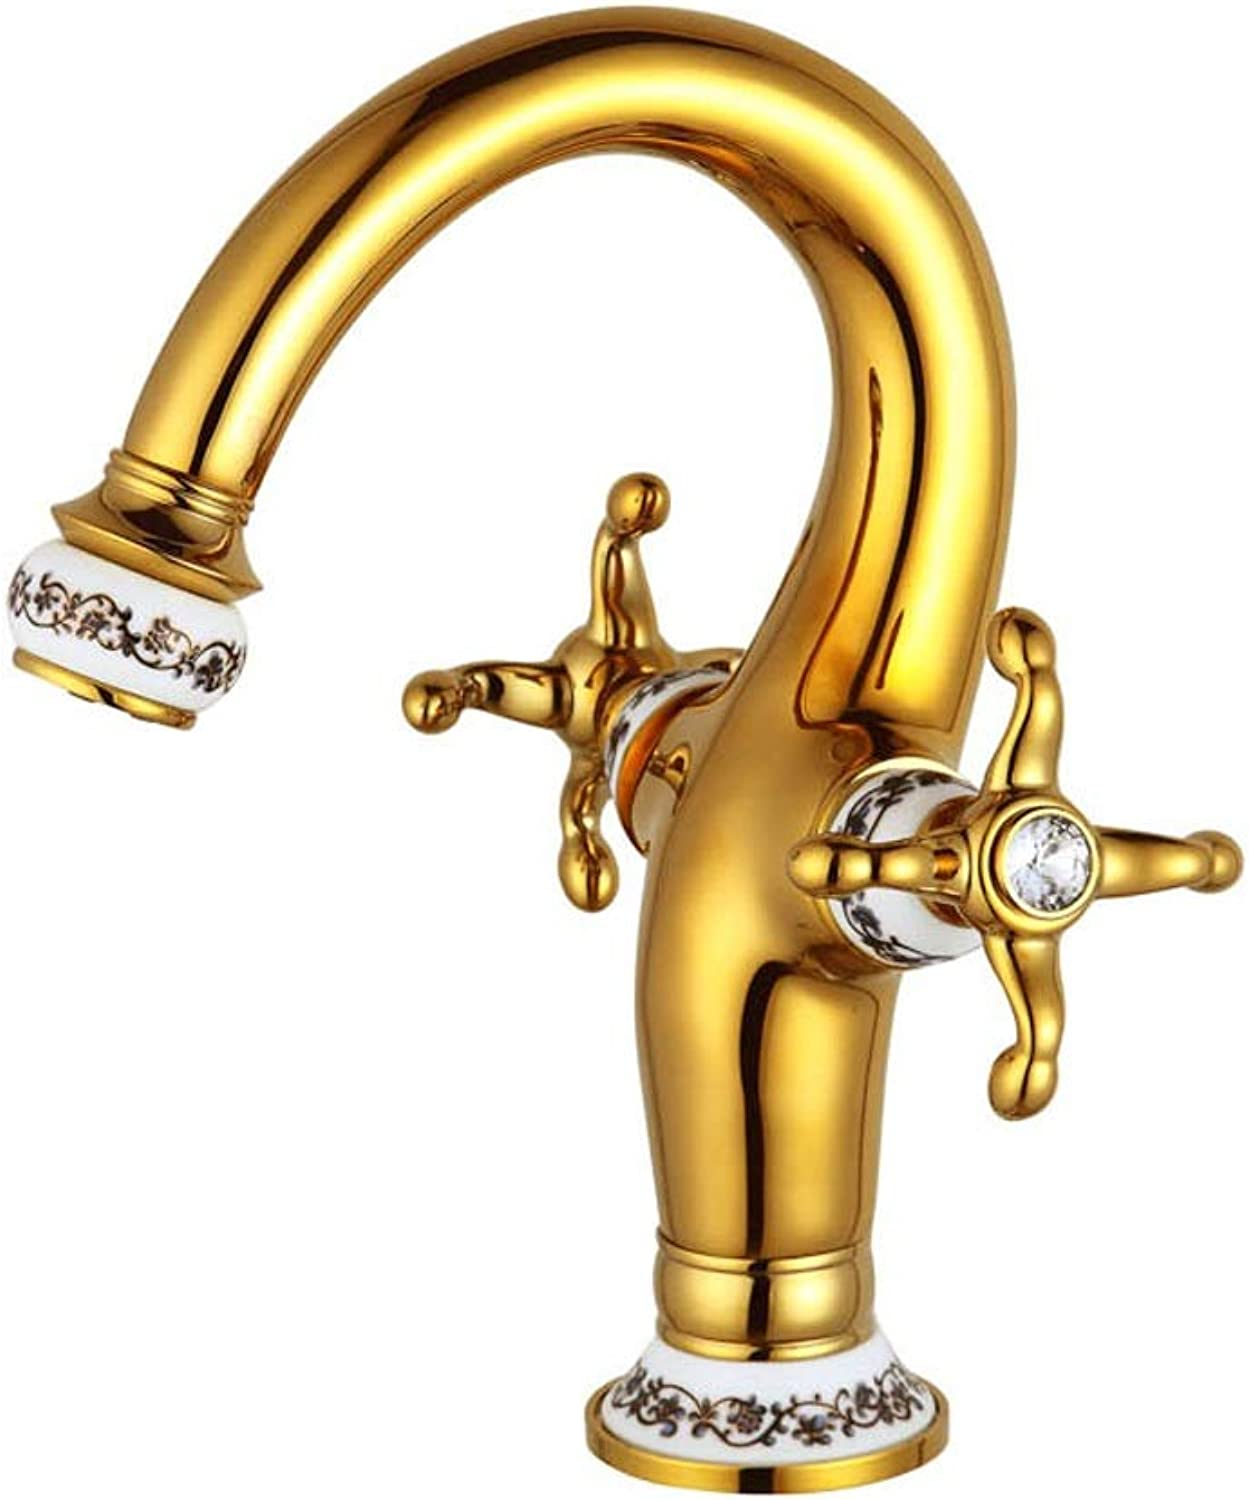 AXWT gold Rhinestone bluee And White Porcelain Cold Heat Faucet European Style Retro Water-tap Ceramics Marble Basin Taps Double Handle